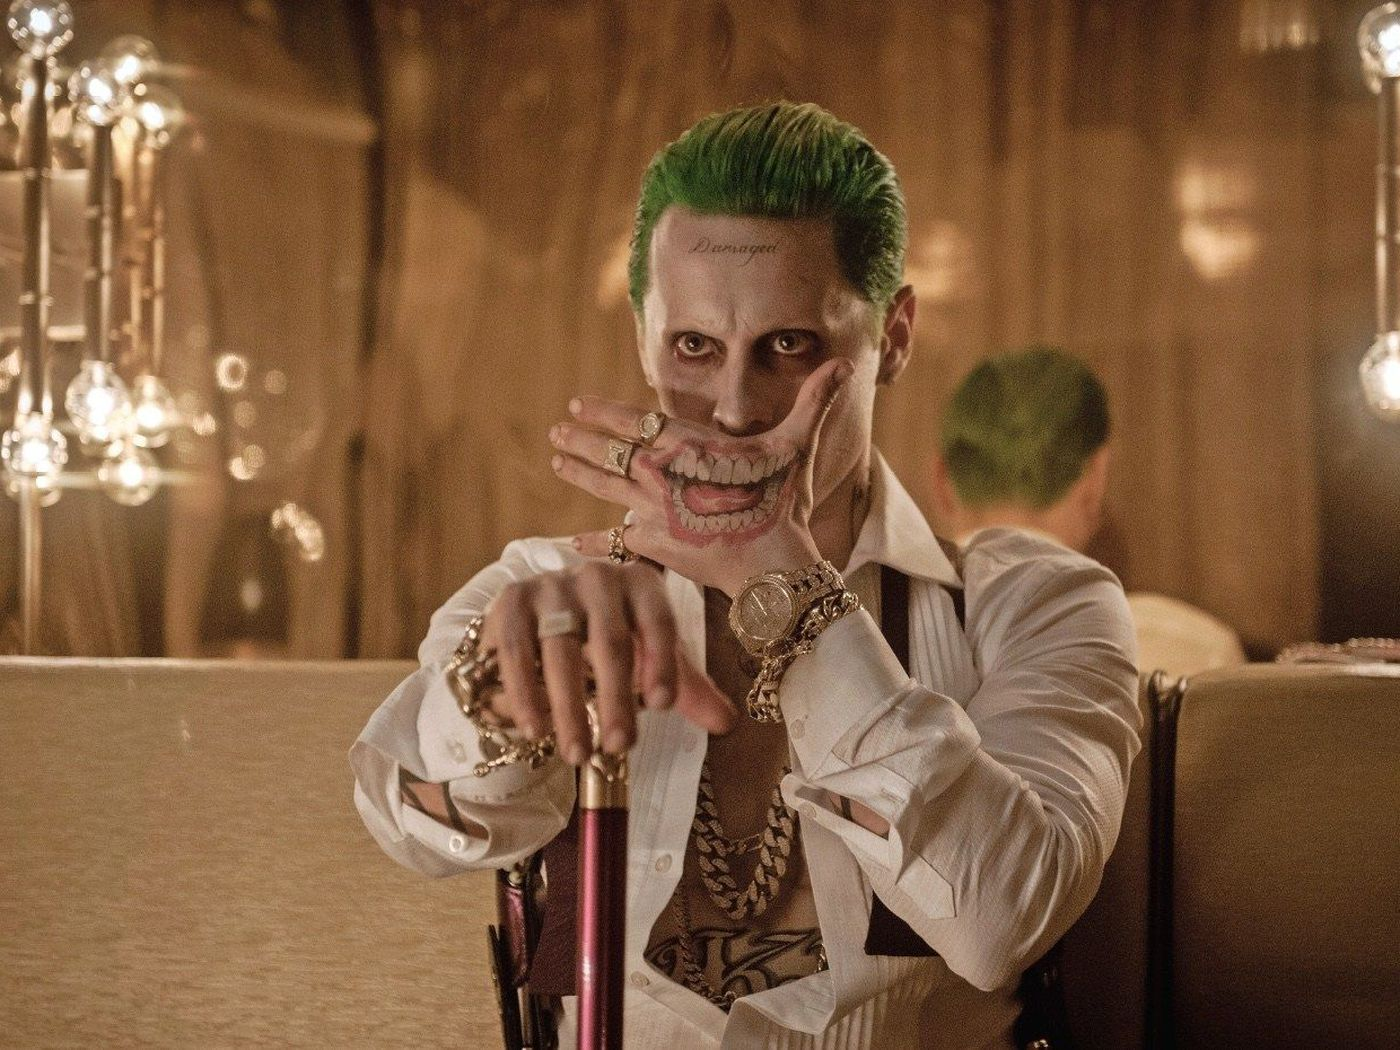 Is The Joker In Birds Of Prey Depends If You Mean Jared Leto